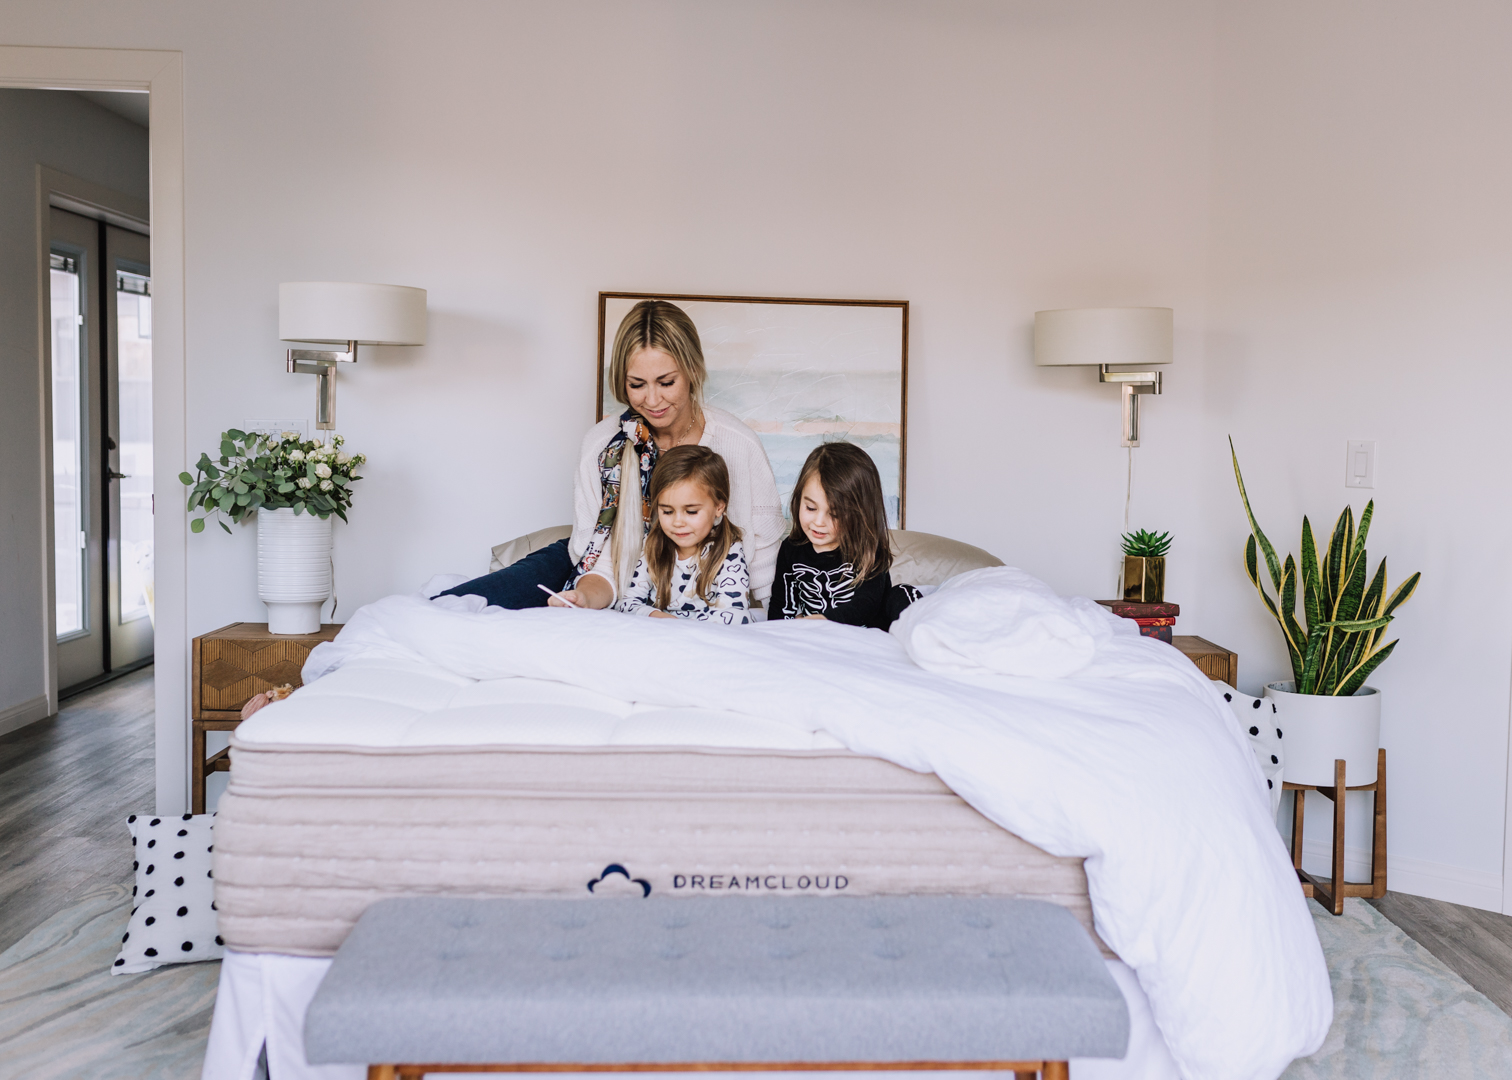 reading bedtime stories with my babies is one of our favorite rituals | thelovedesignedlife.com #mydreamcloud #readwithdreamcloud #bedtimestories #bedroomdecor